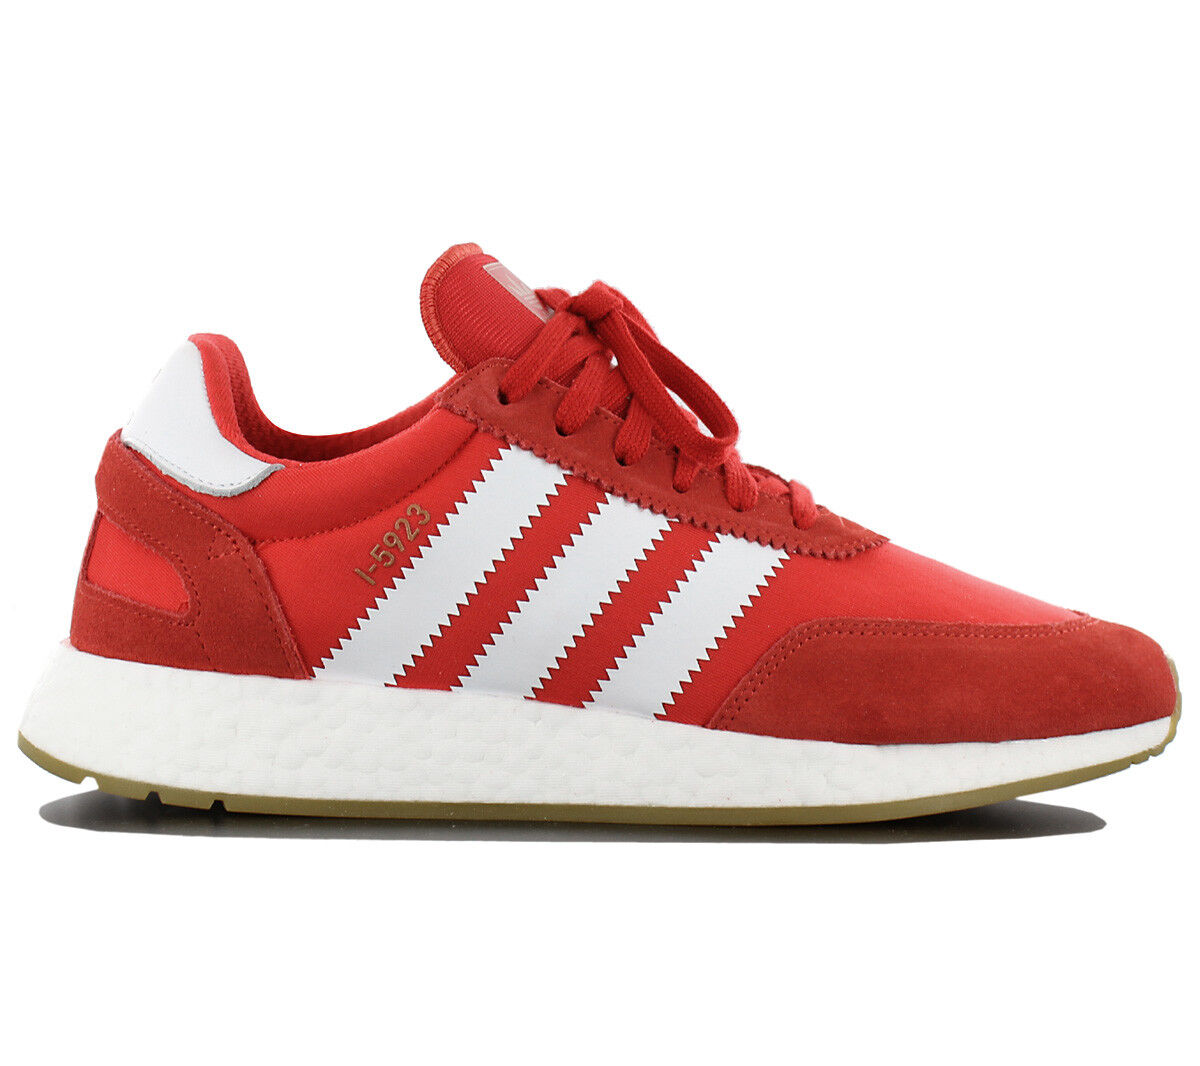 Adidas Iniki i-5923 Boost Men's Sneakers Shoes Red Sneakers Leisure BB2091